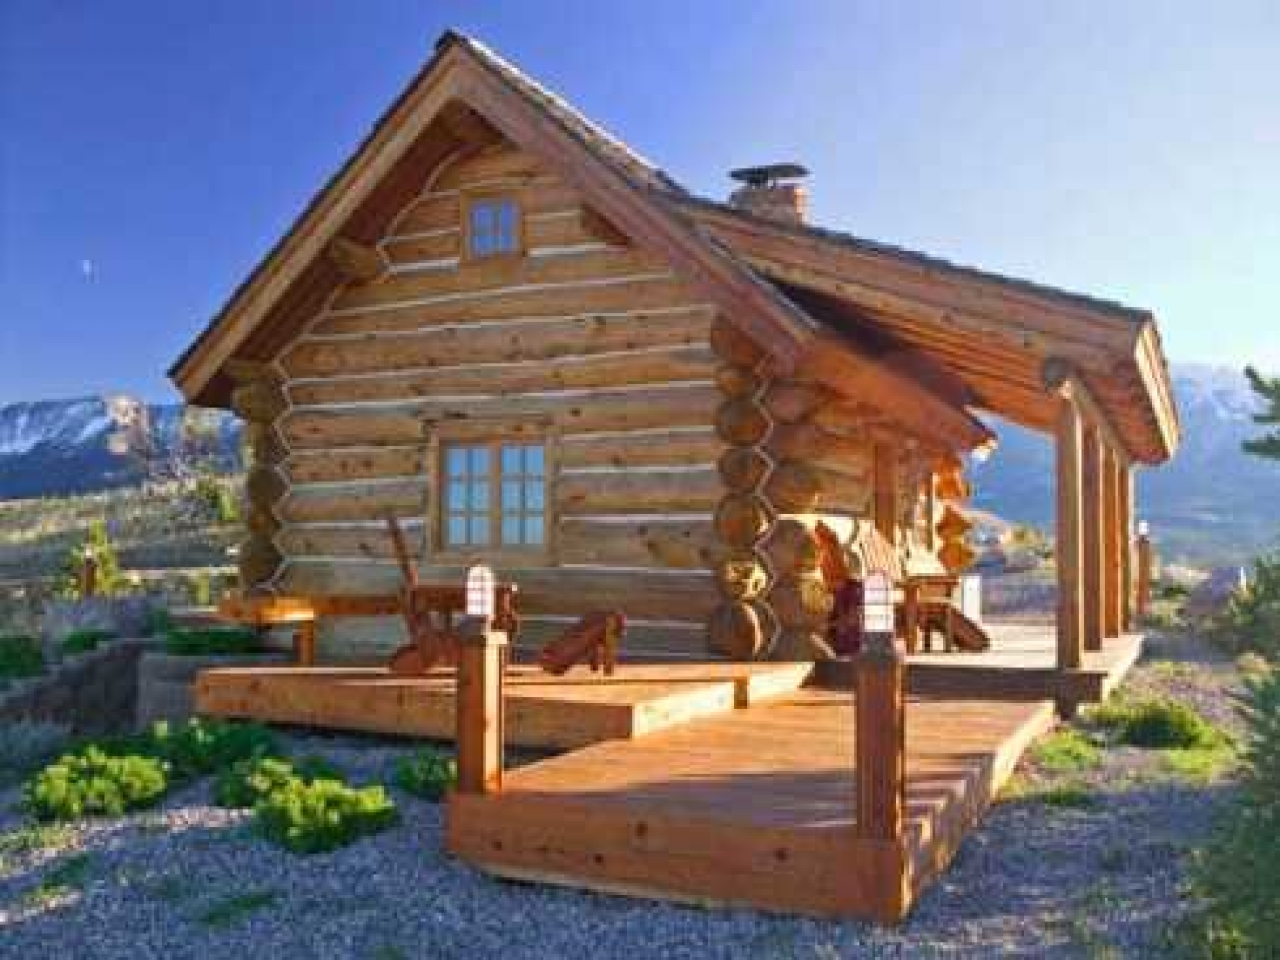 Small Log Cabin Kit Homes Small Log Cabin Floor Plans: Log Cabin Kits Small Log Cabin Homes Plans, Small Mountain